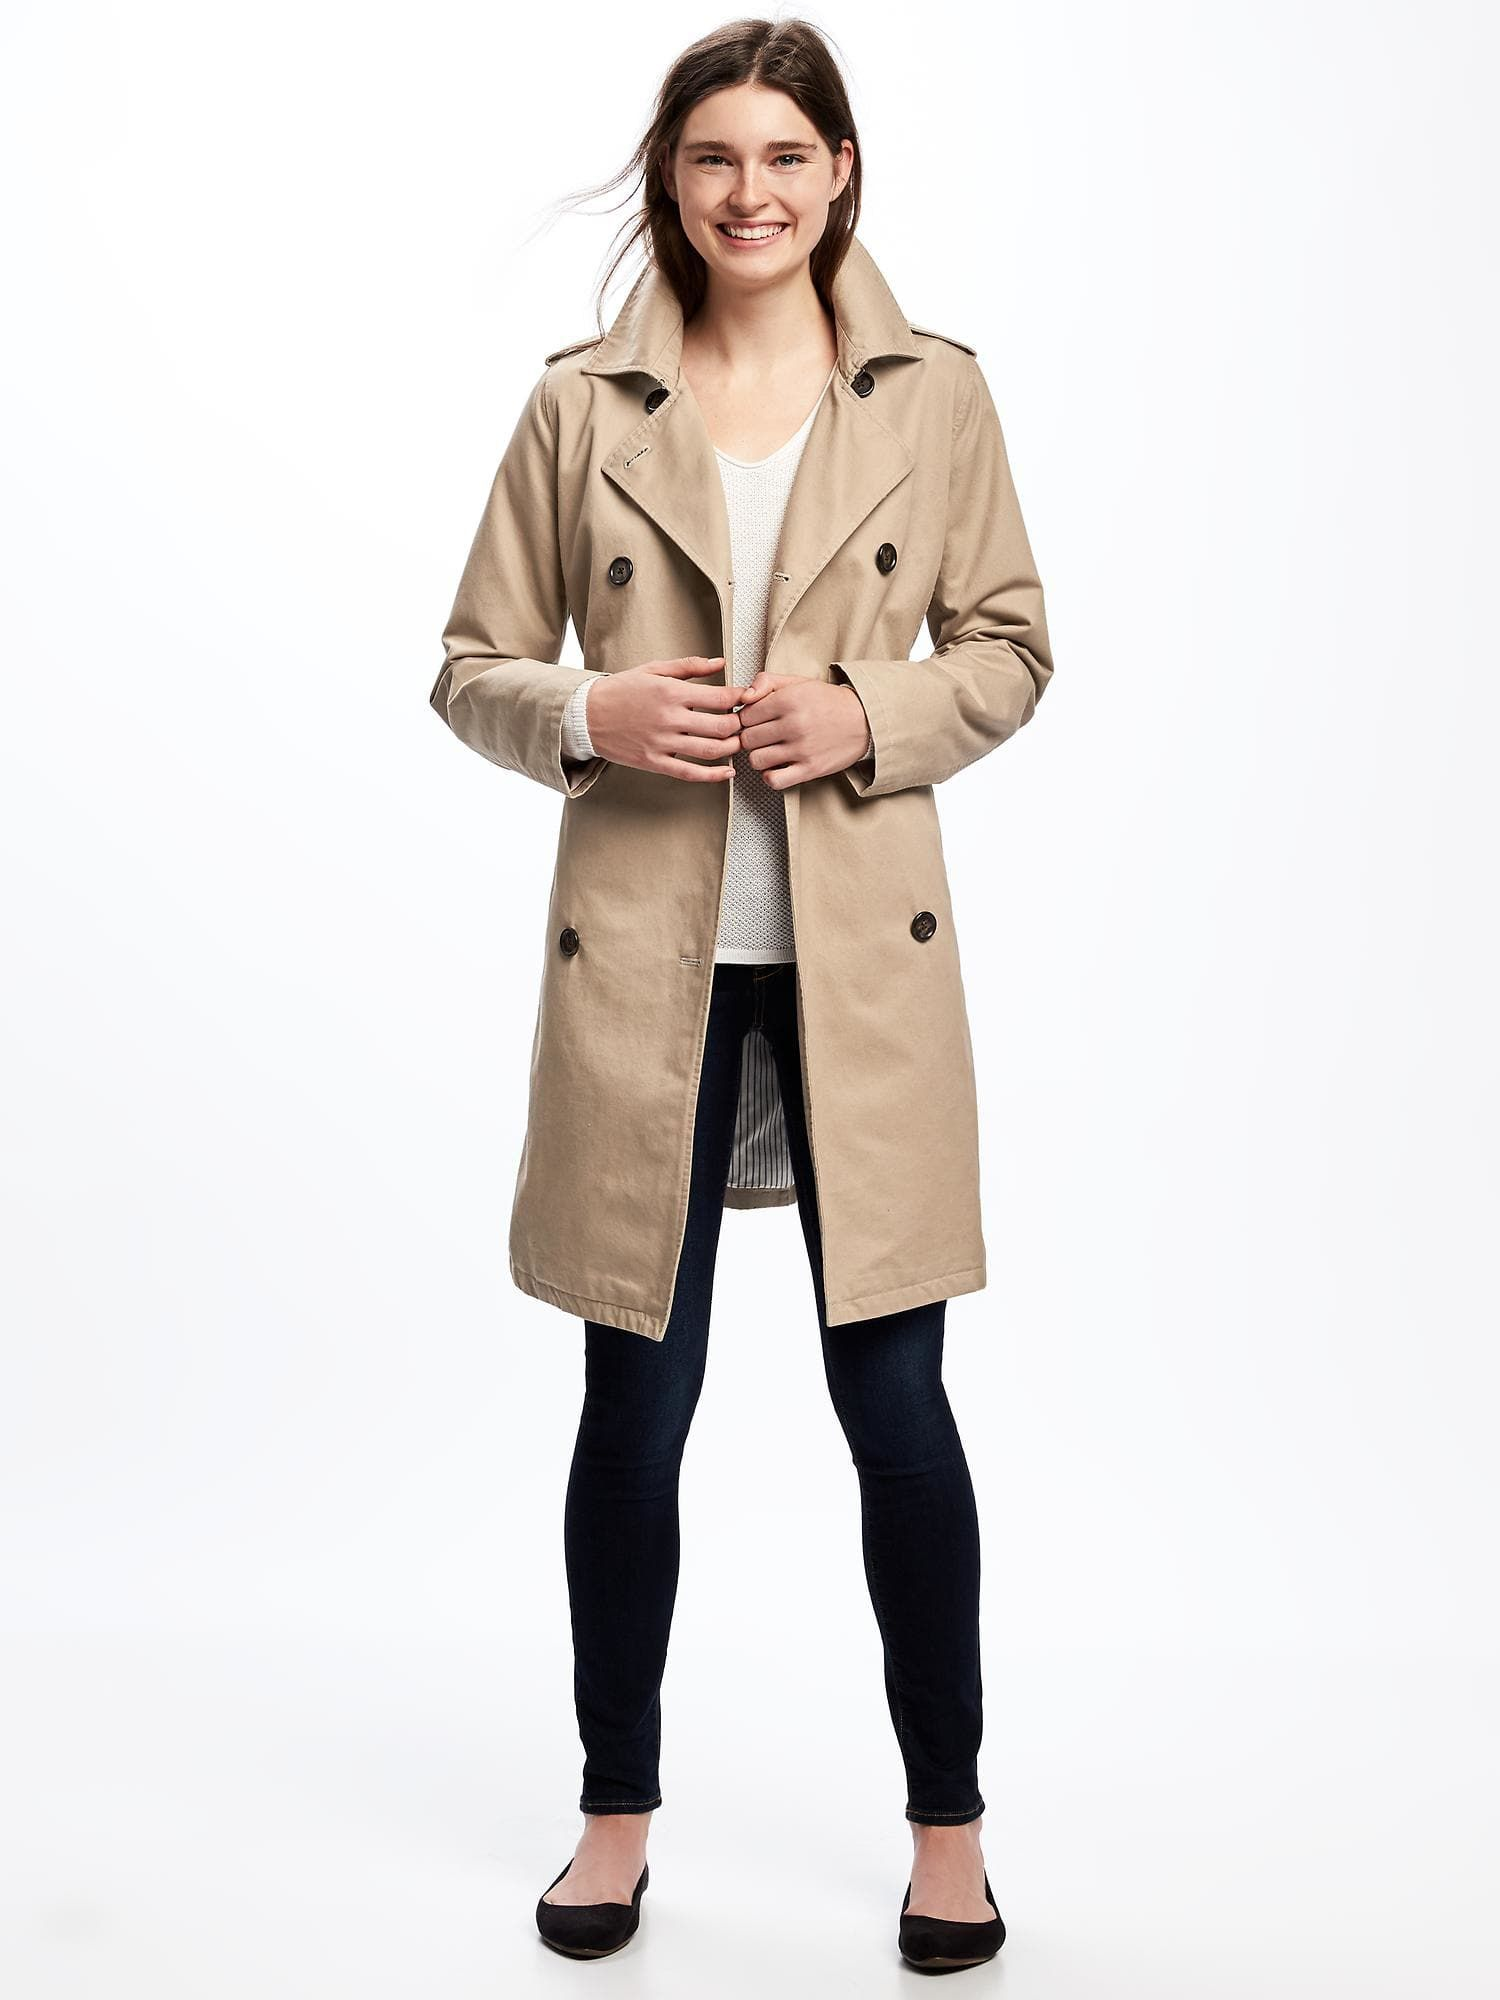 dd3ebb82333d7 Trench Coat for Women | Old Navy | Fashion - Jackets | Navy trench ...